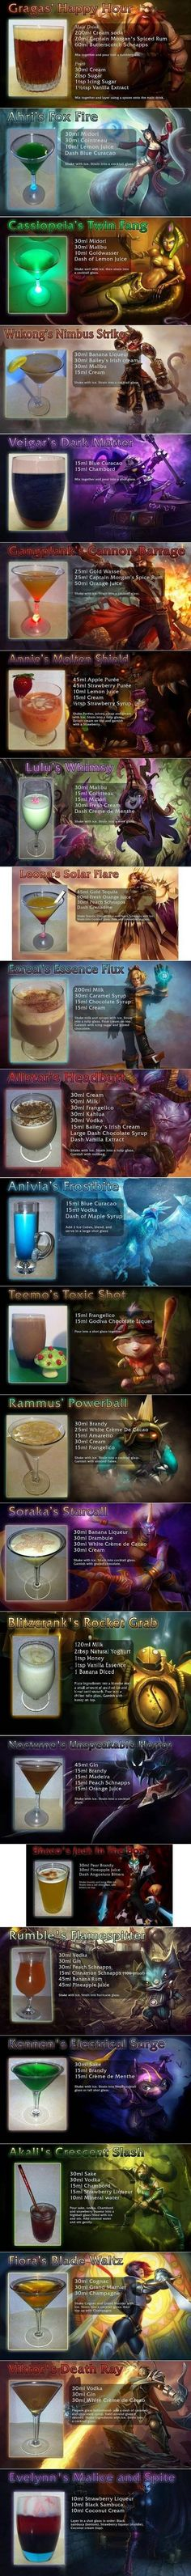 24 League Of Legends Drink Recipes | WeKnowMemes